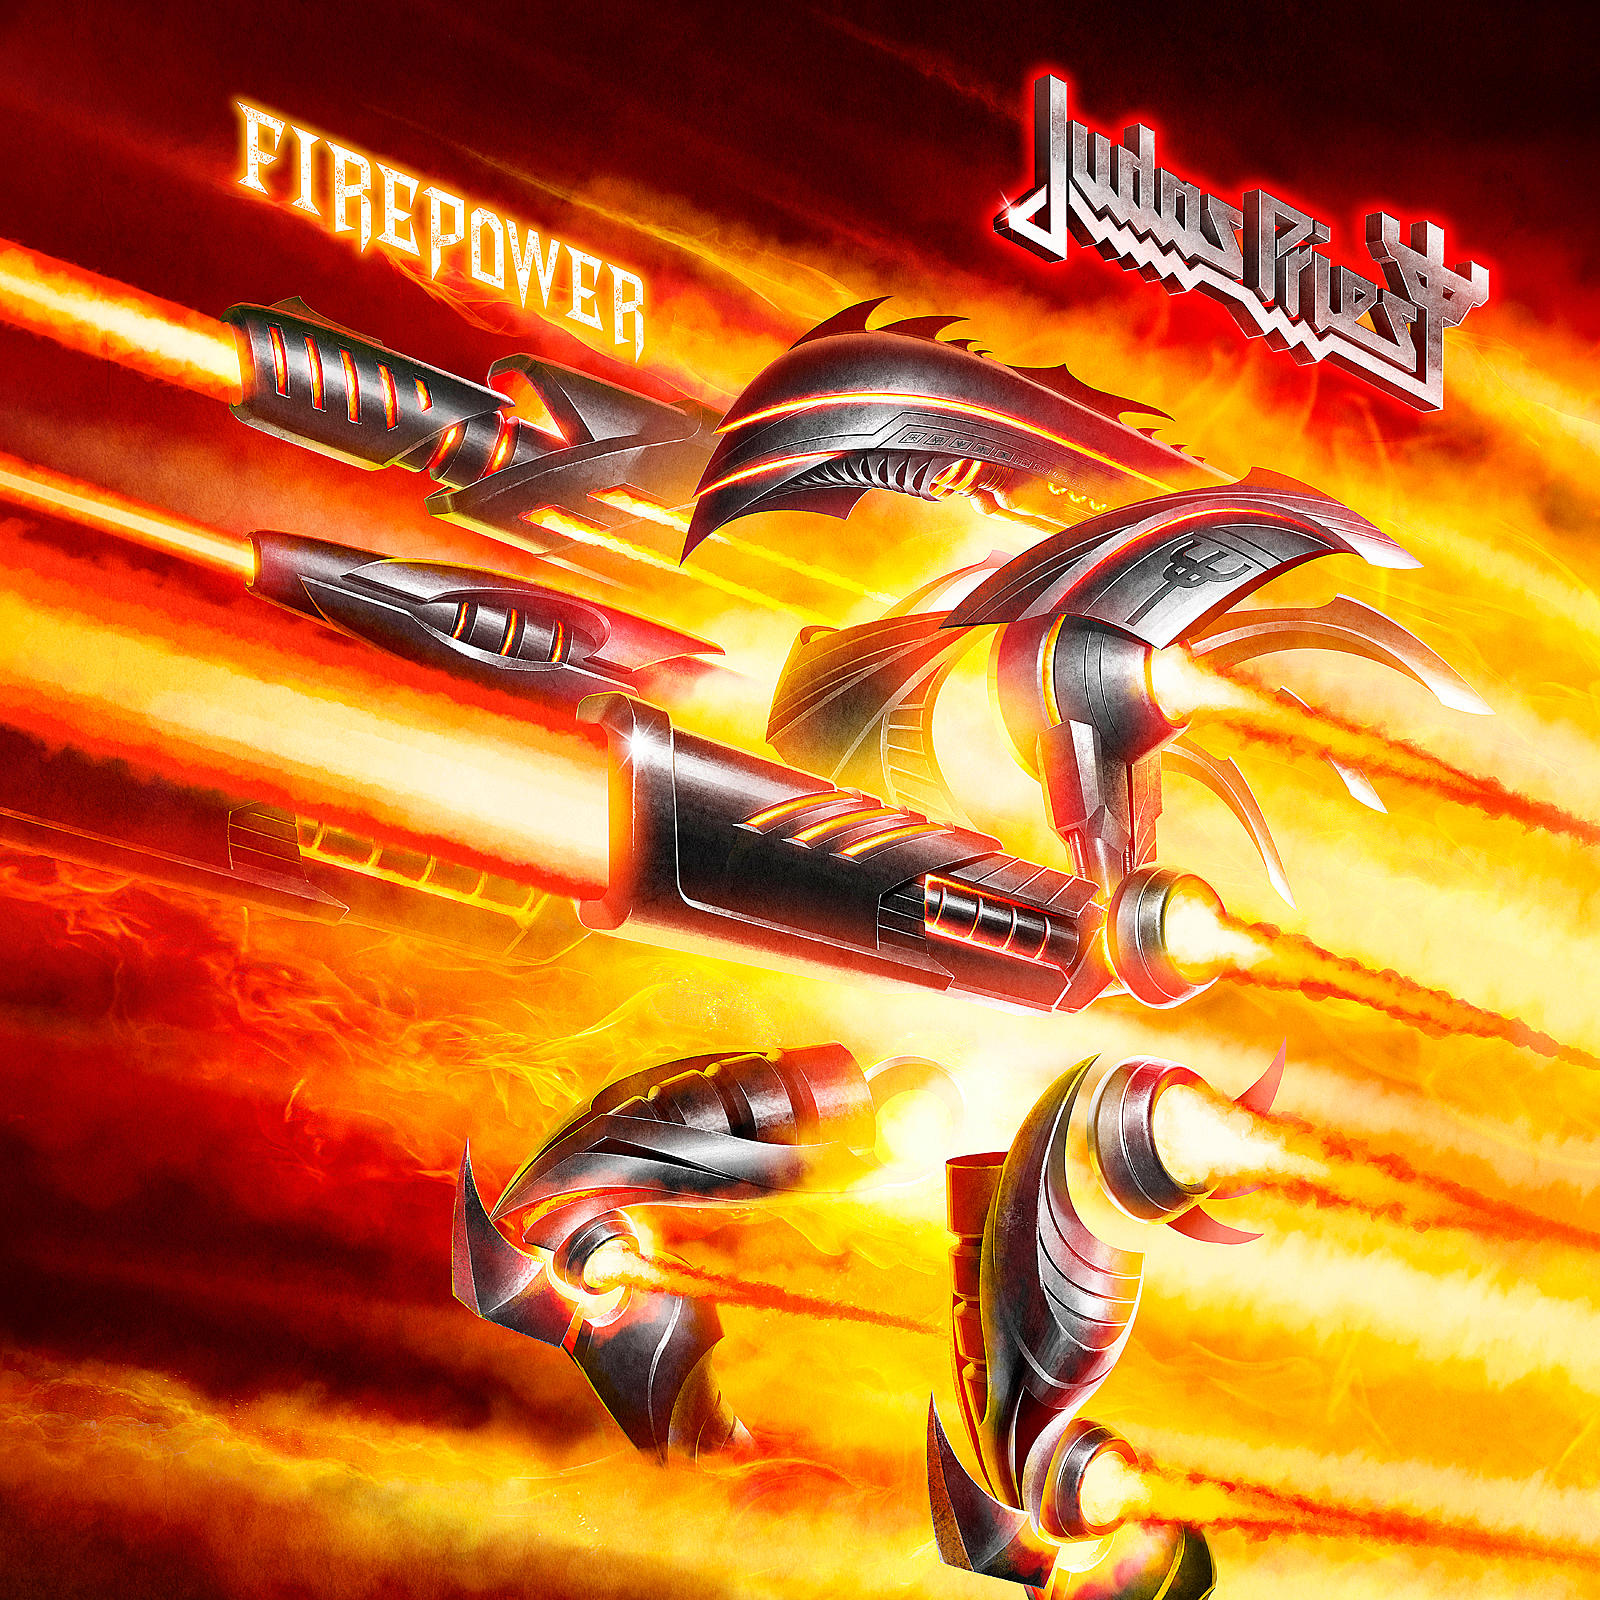 judas-priest-firepower-artwork-2018